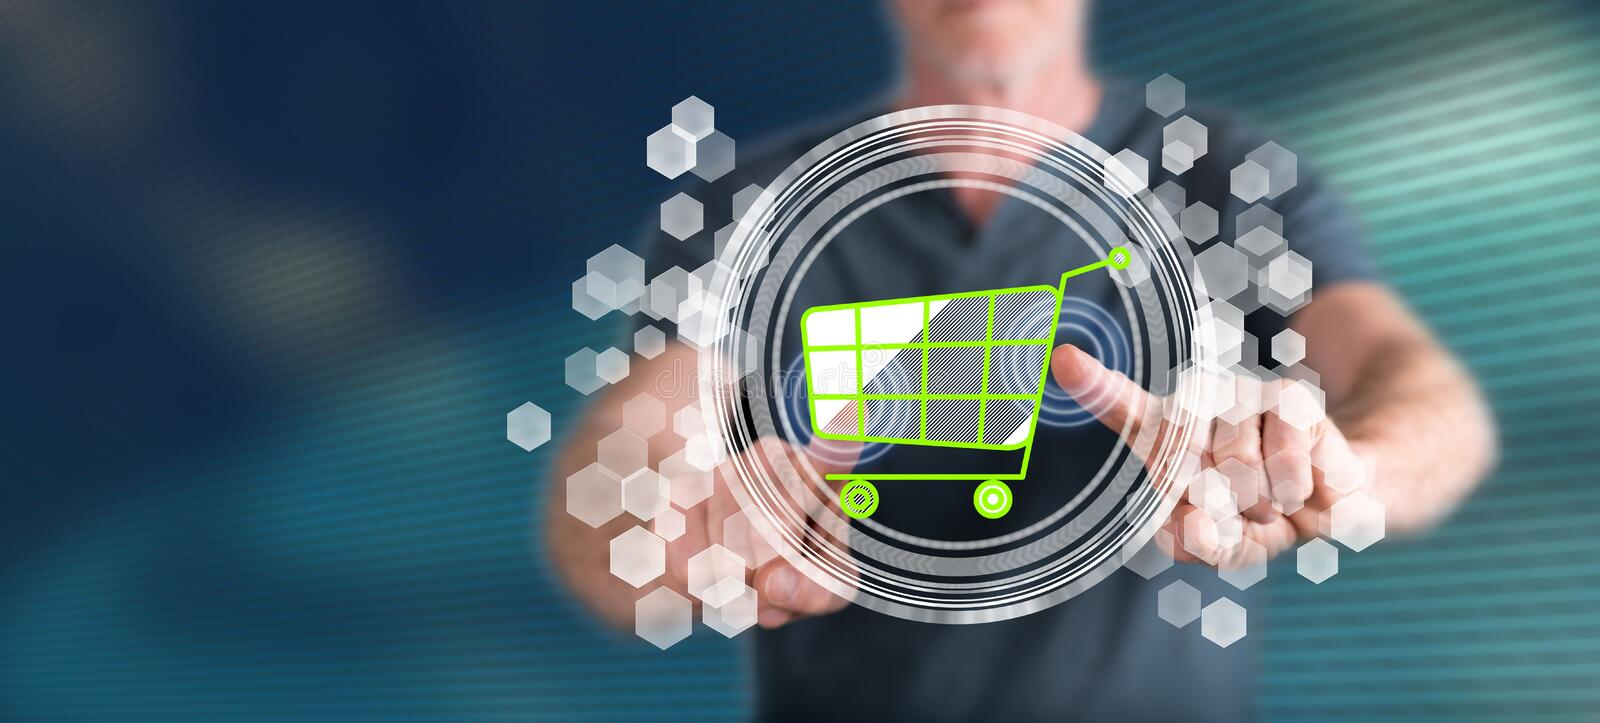 Man touching an e-commerce concept stock image